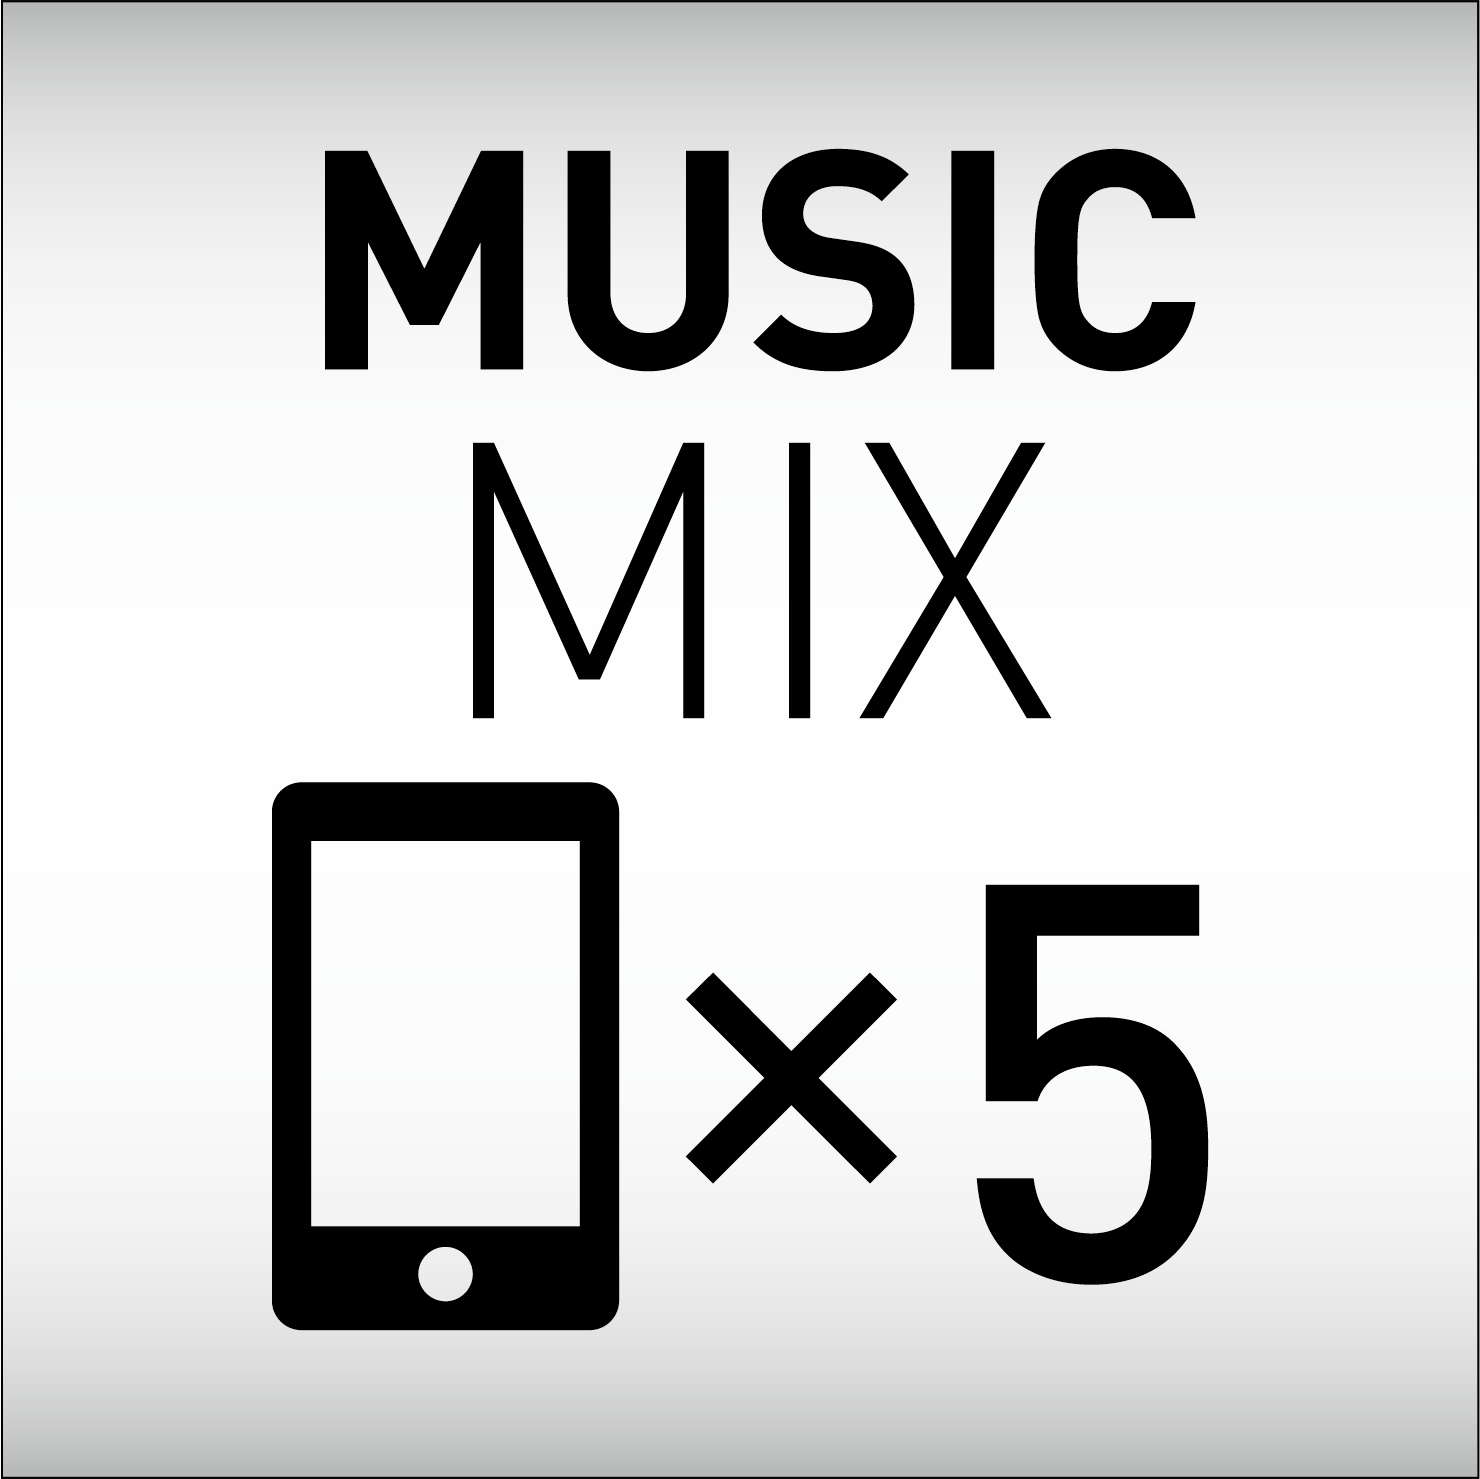 5 Phones Music Mix